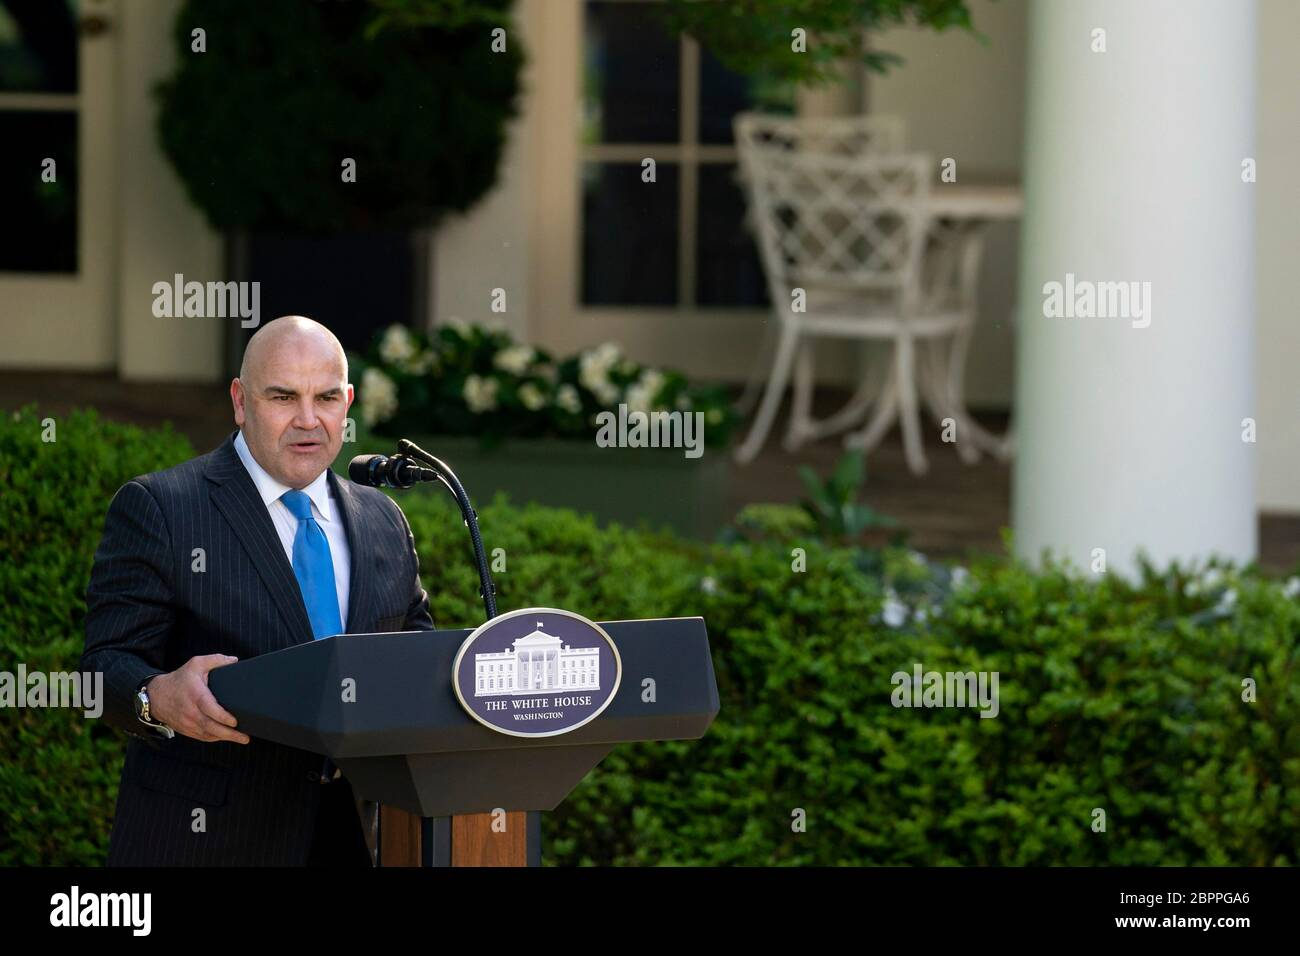 Landlord Clay Young, delivers remarks during the Presidential Recognition Ceremony: Hard Work, Heroism, and Hope in the Rose Garden of the White House May 15, 2020 in Washington, D.C. The event honored front line workers battling the COVID-19, coronavirus pandemic. Stock Photo